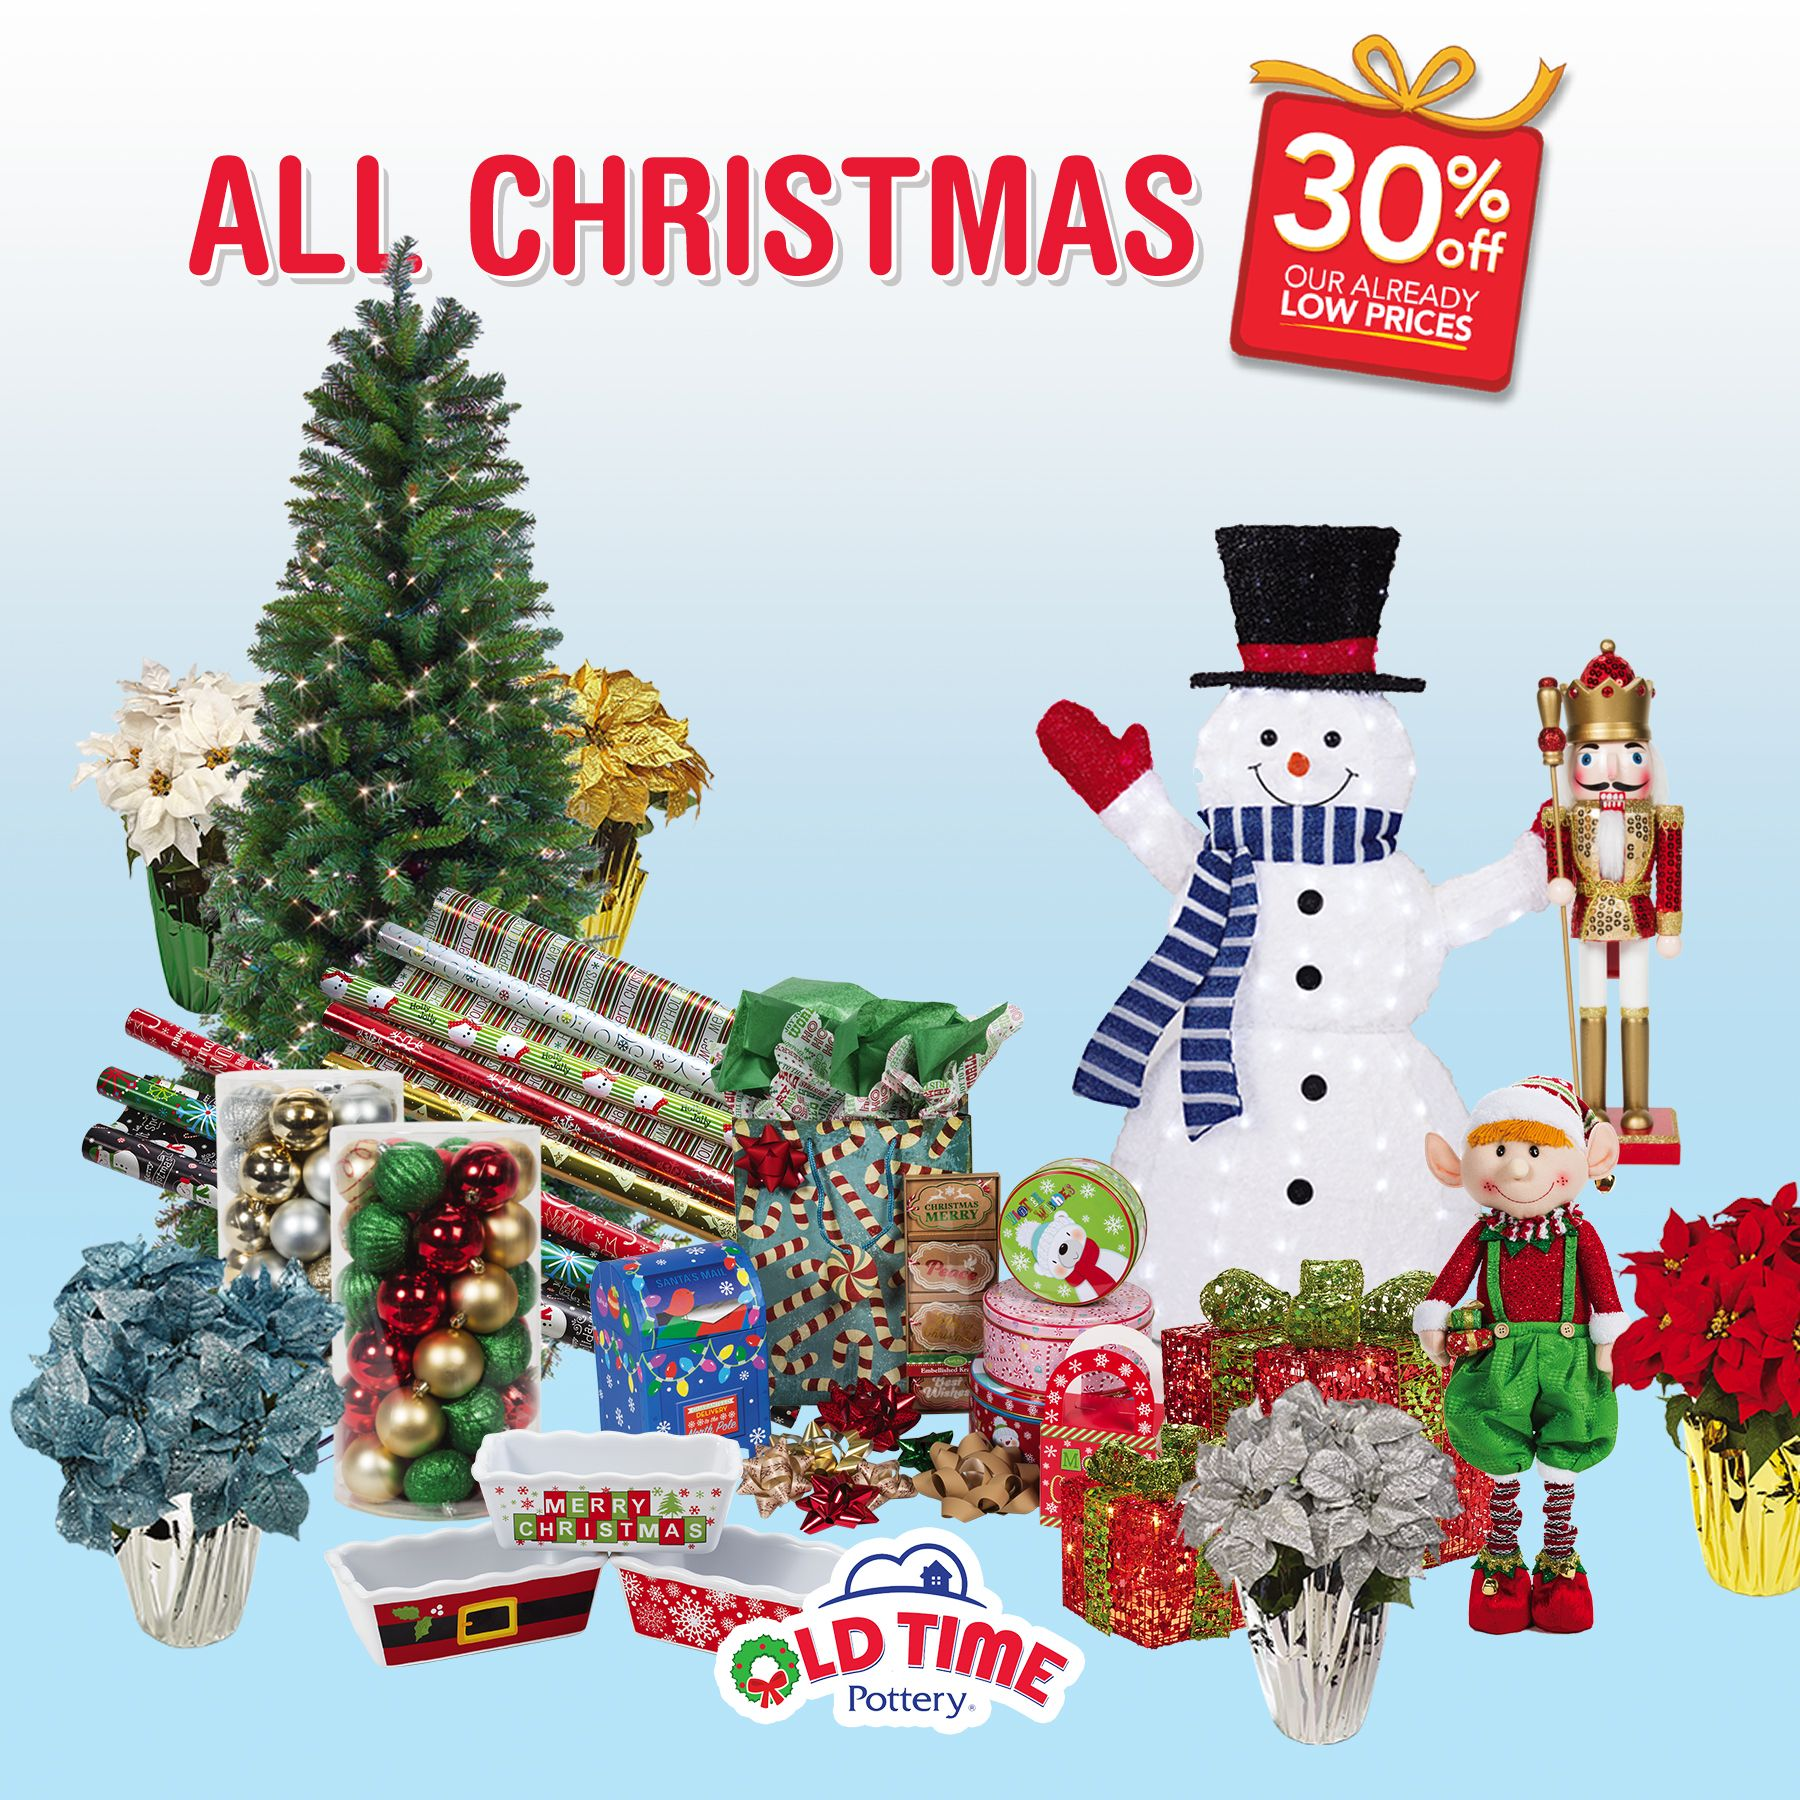 Joy to the world ALL Christmas and ALL toys are off at Old